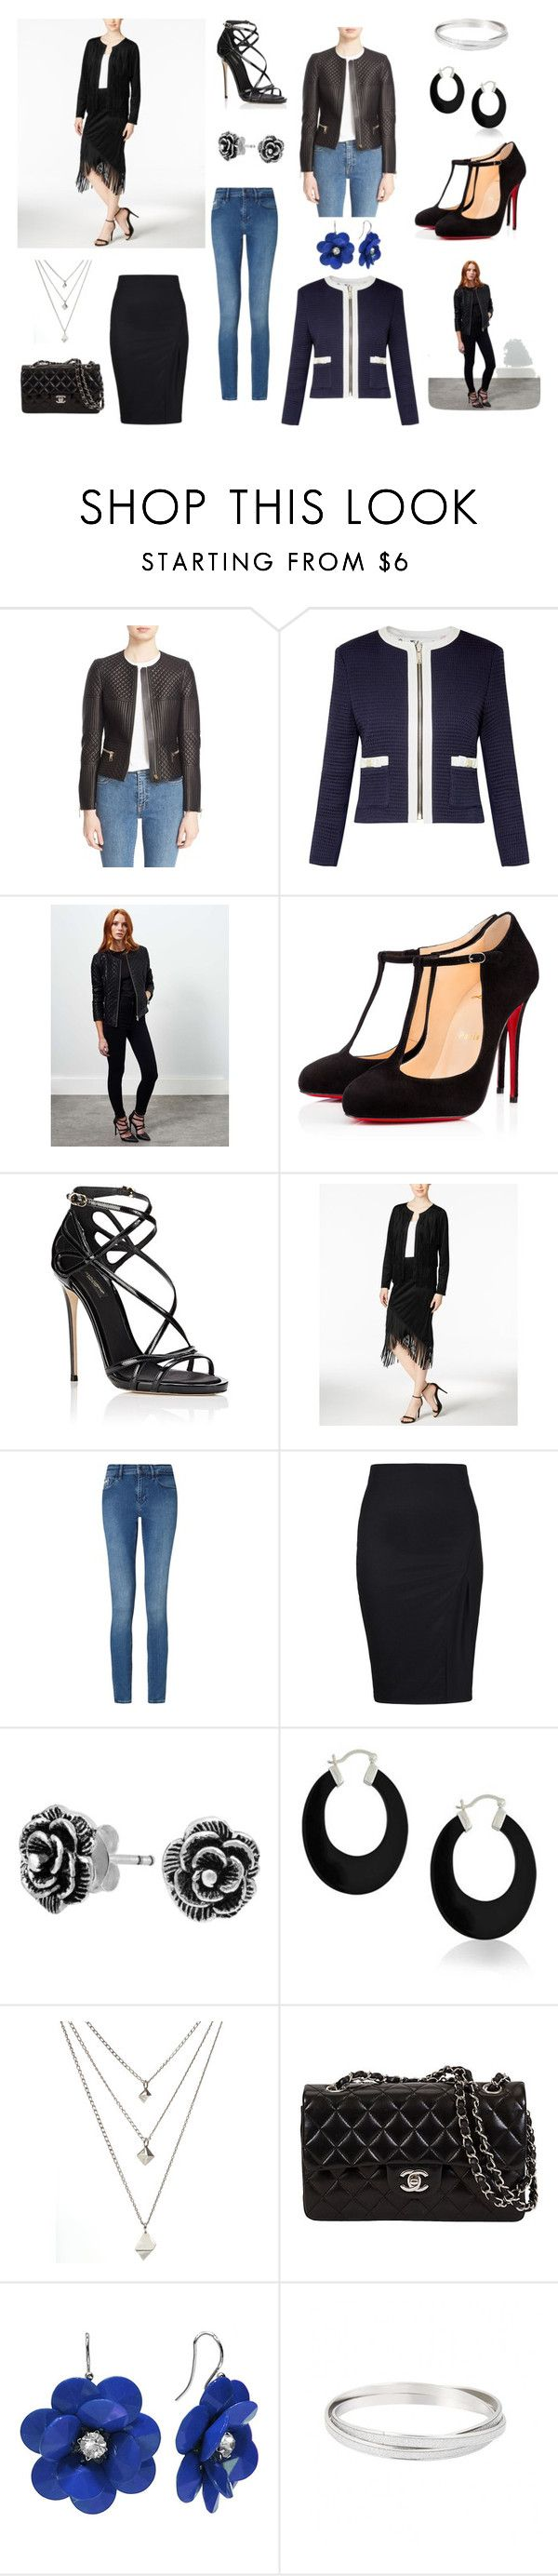 """Tablero chaqueta channel"" by giselle-suarez on Polyvore featuring Burberry, Ted Baker, Miss Selfridge, Christian Louboutin, Dolce&Gabbana, Kensie, Calvin Klein and Bling Jewelry"